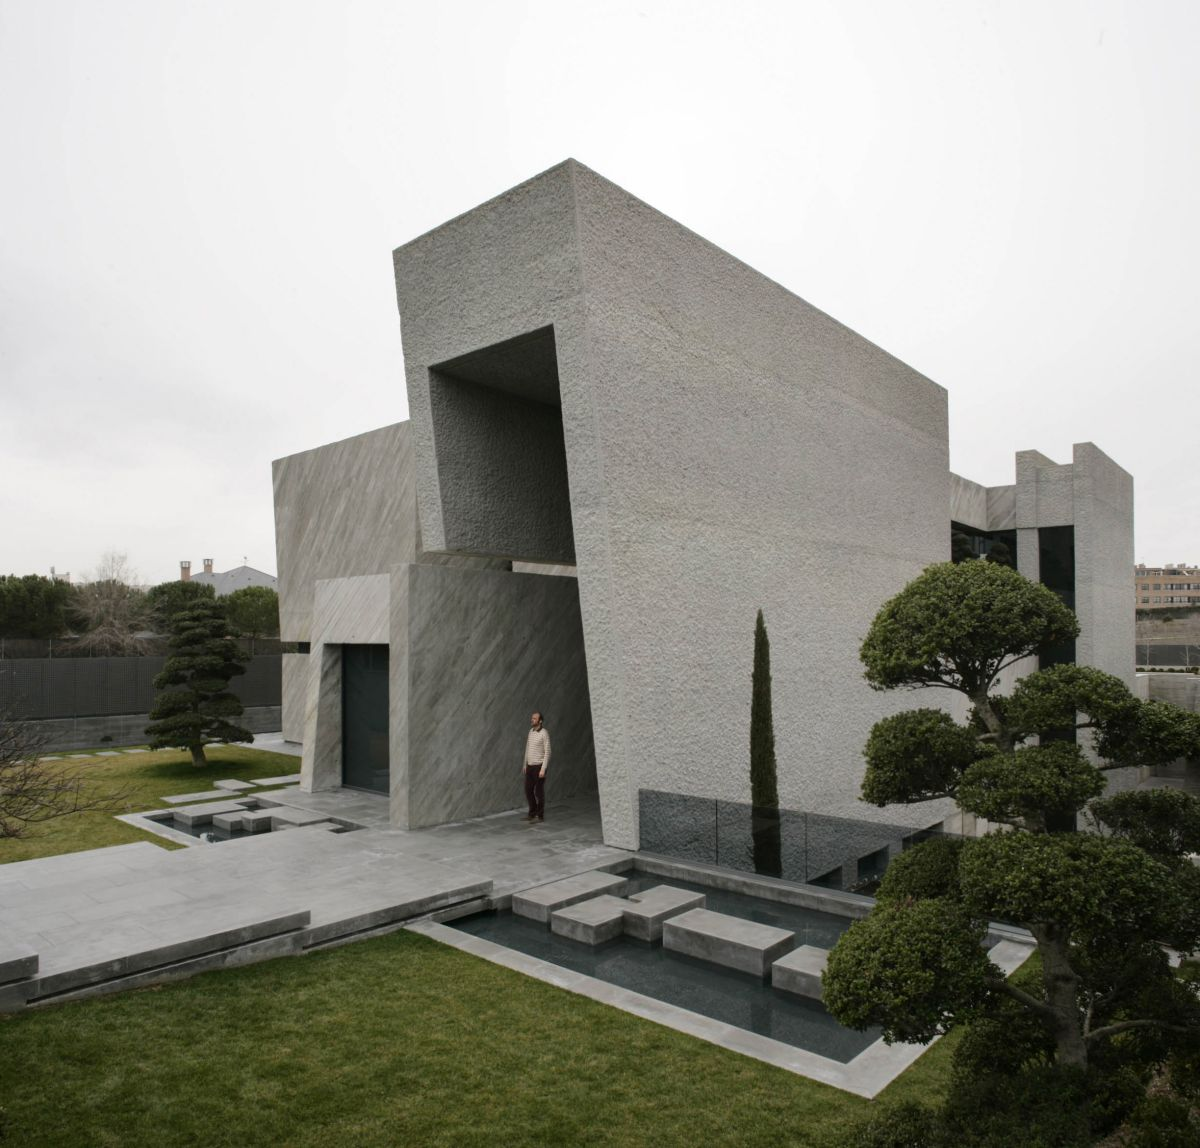 The-Open-Box-House-11